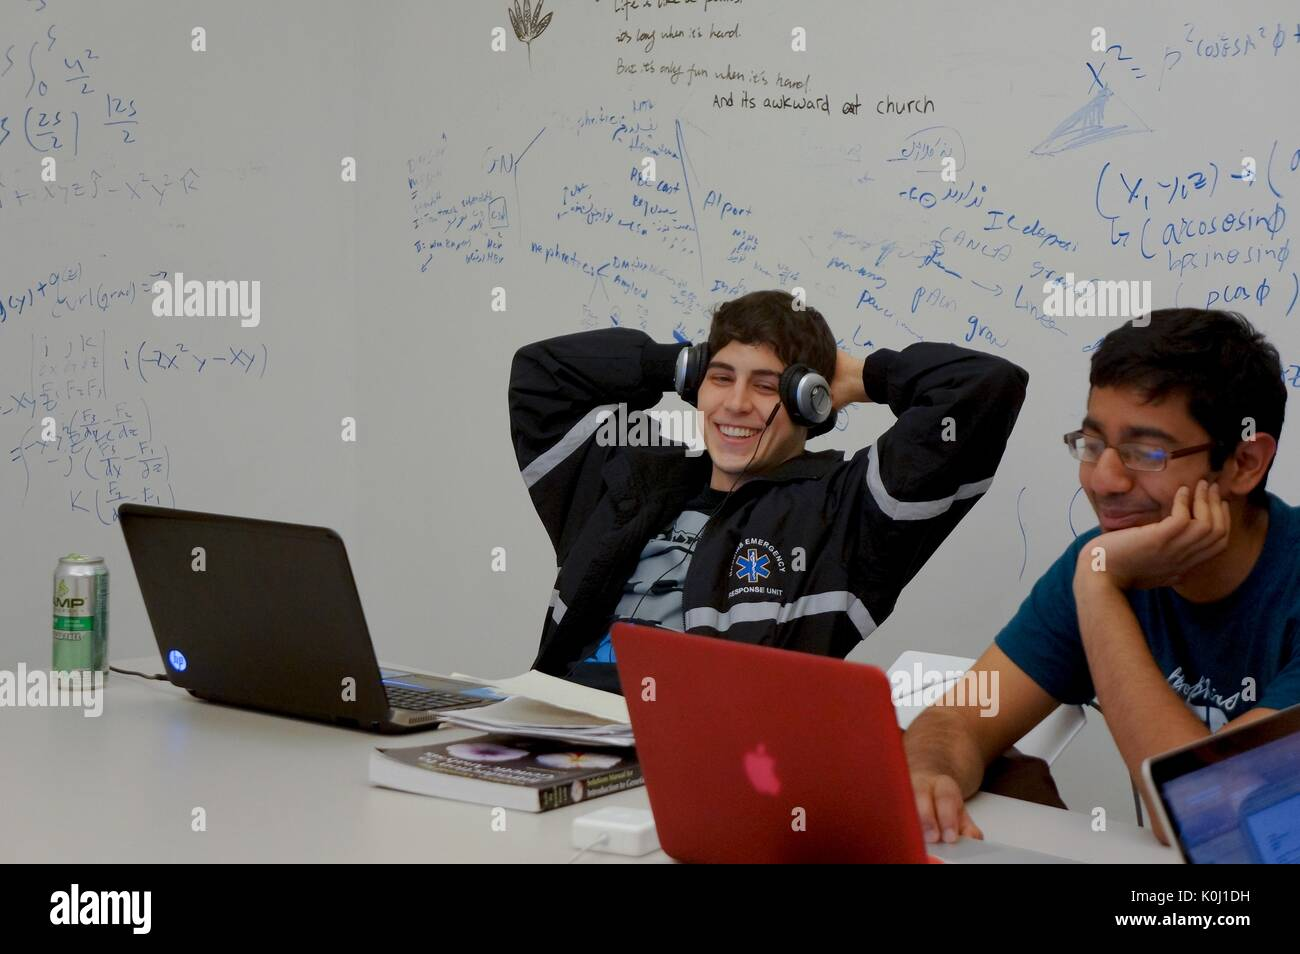 Two male students sitting at a white table with two laptops, study materials, and a canned energy drink; whiteboard walls containing writing and equations in both blue and black marker, smiling facial expressions, 2016. Courtesy Eric Chen. - Stock Image